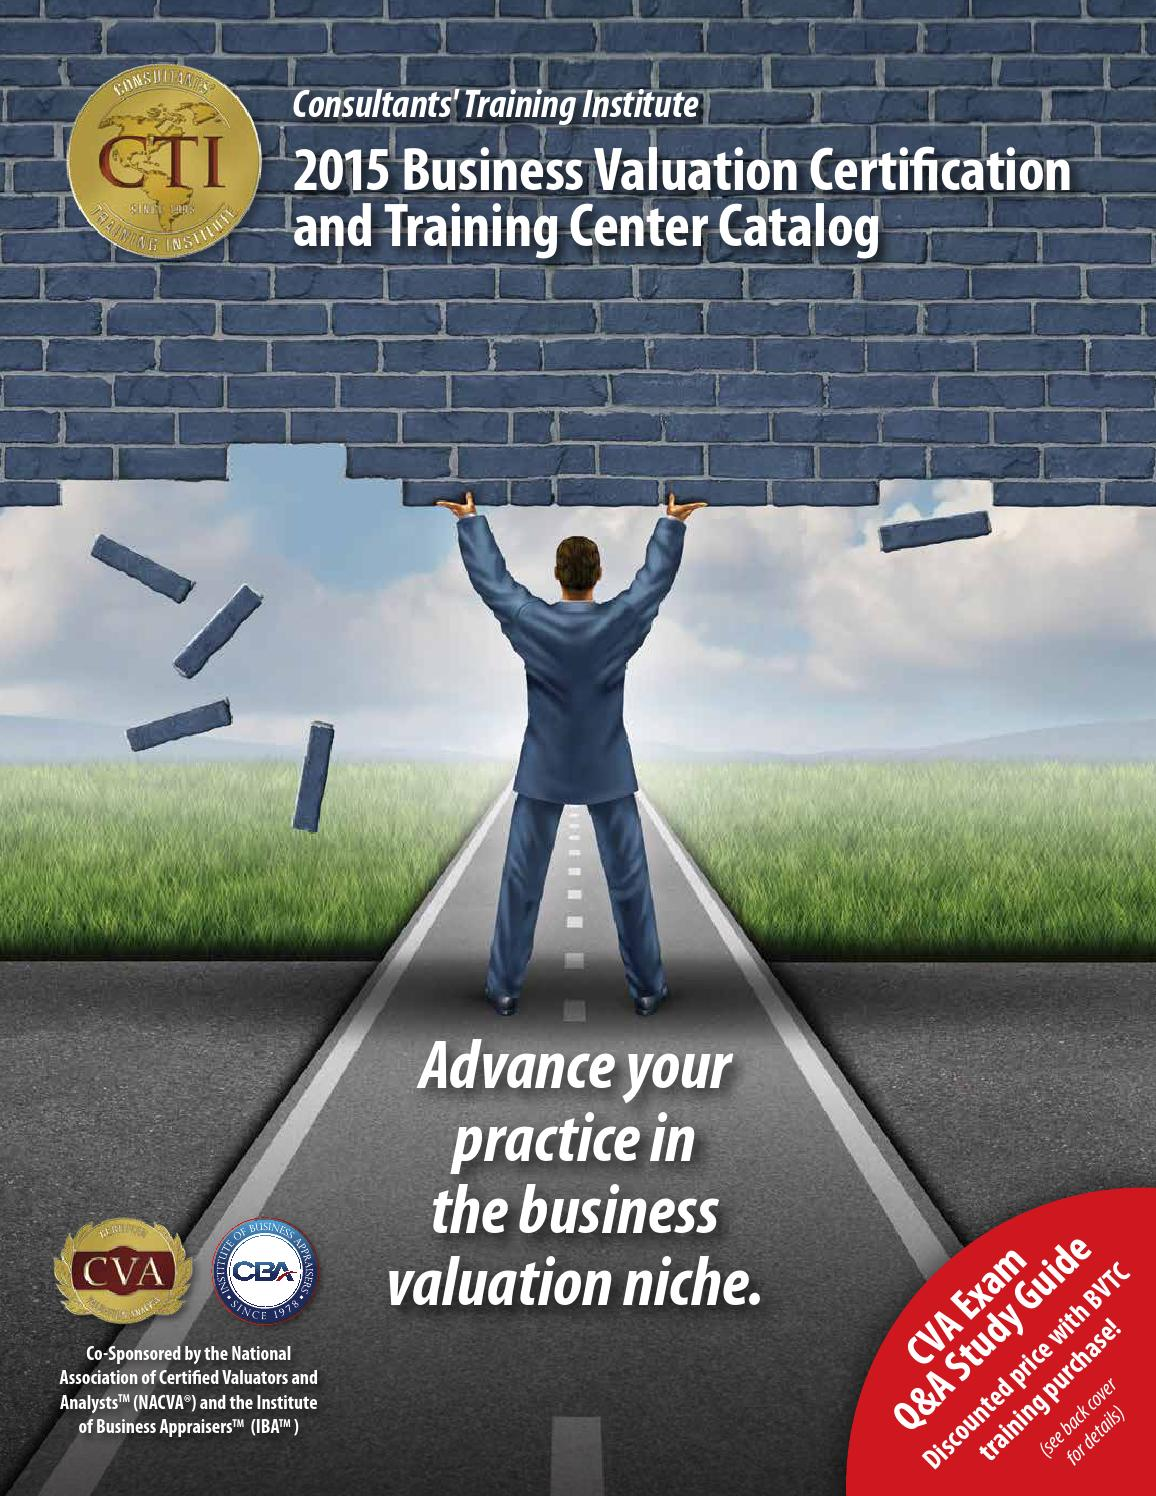 2015 business valuation certification and training center catalog 2015 business valuation certification and training center catalog by national association of certified valuators and analysts issuu 1betcityfo Choice Image